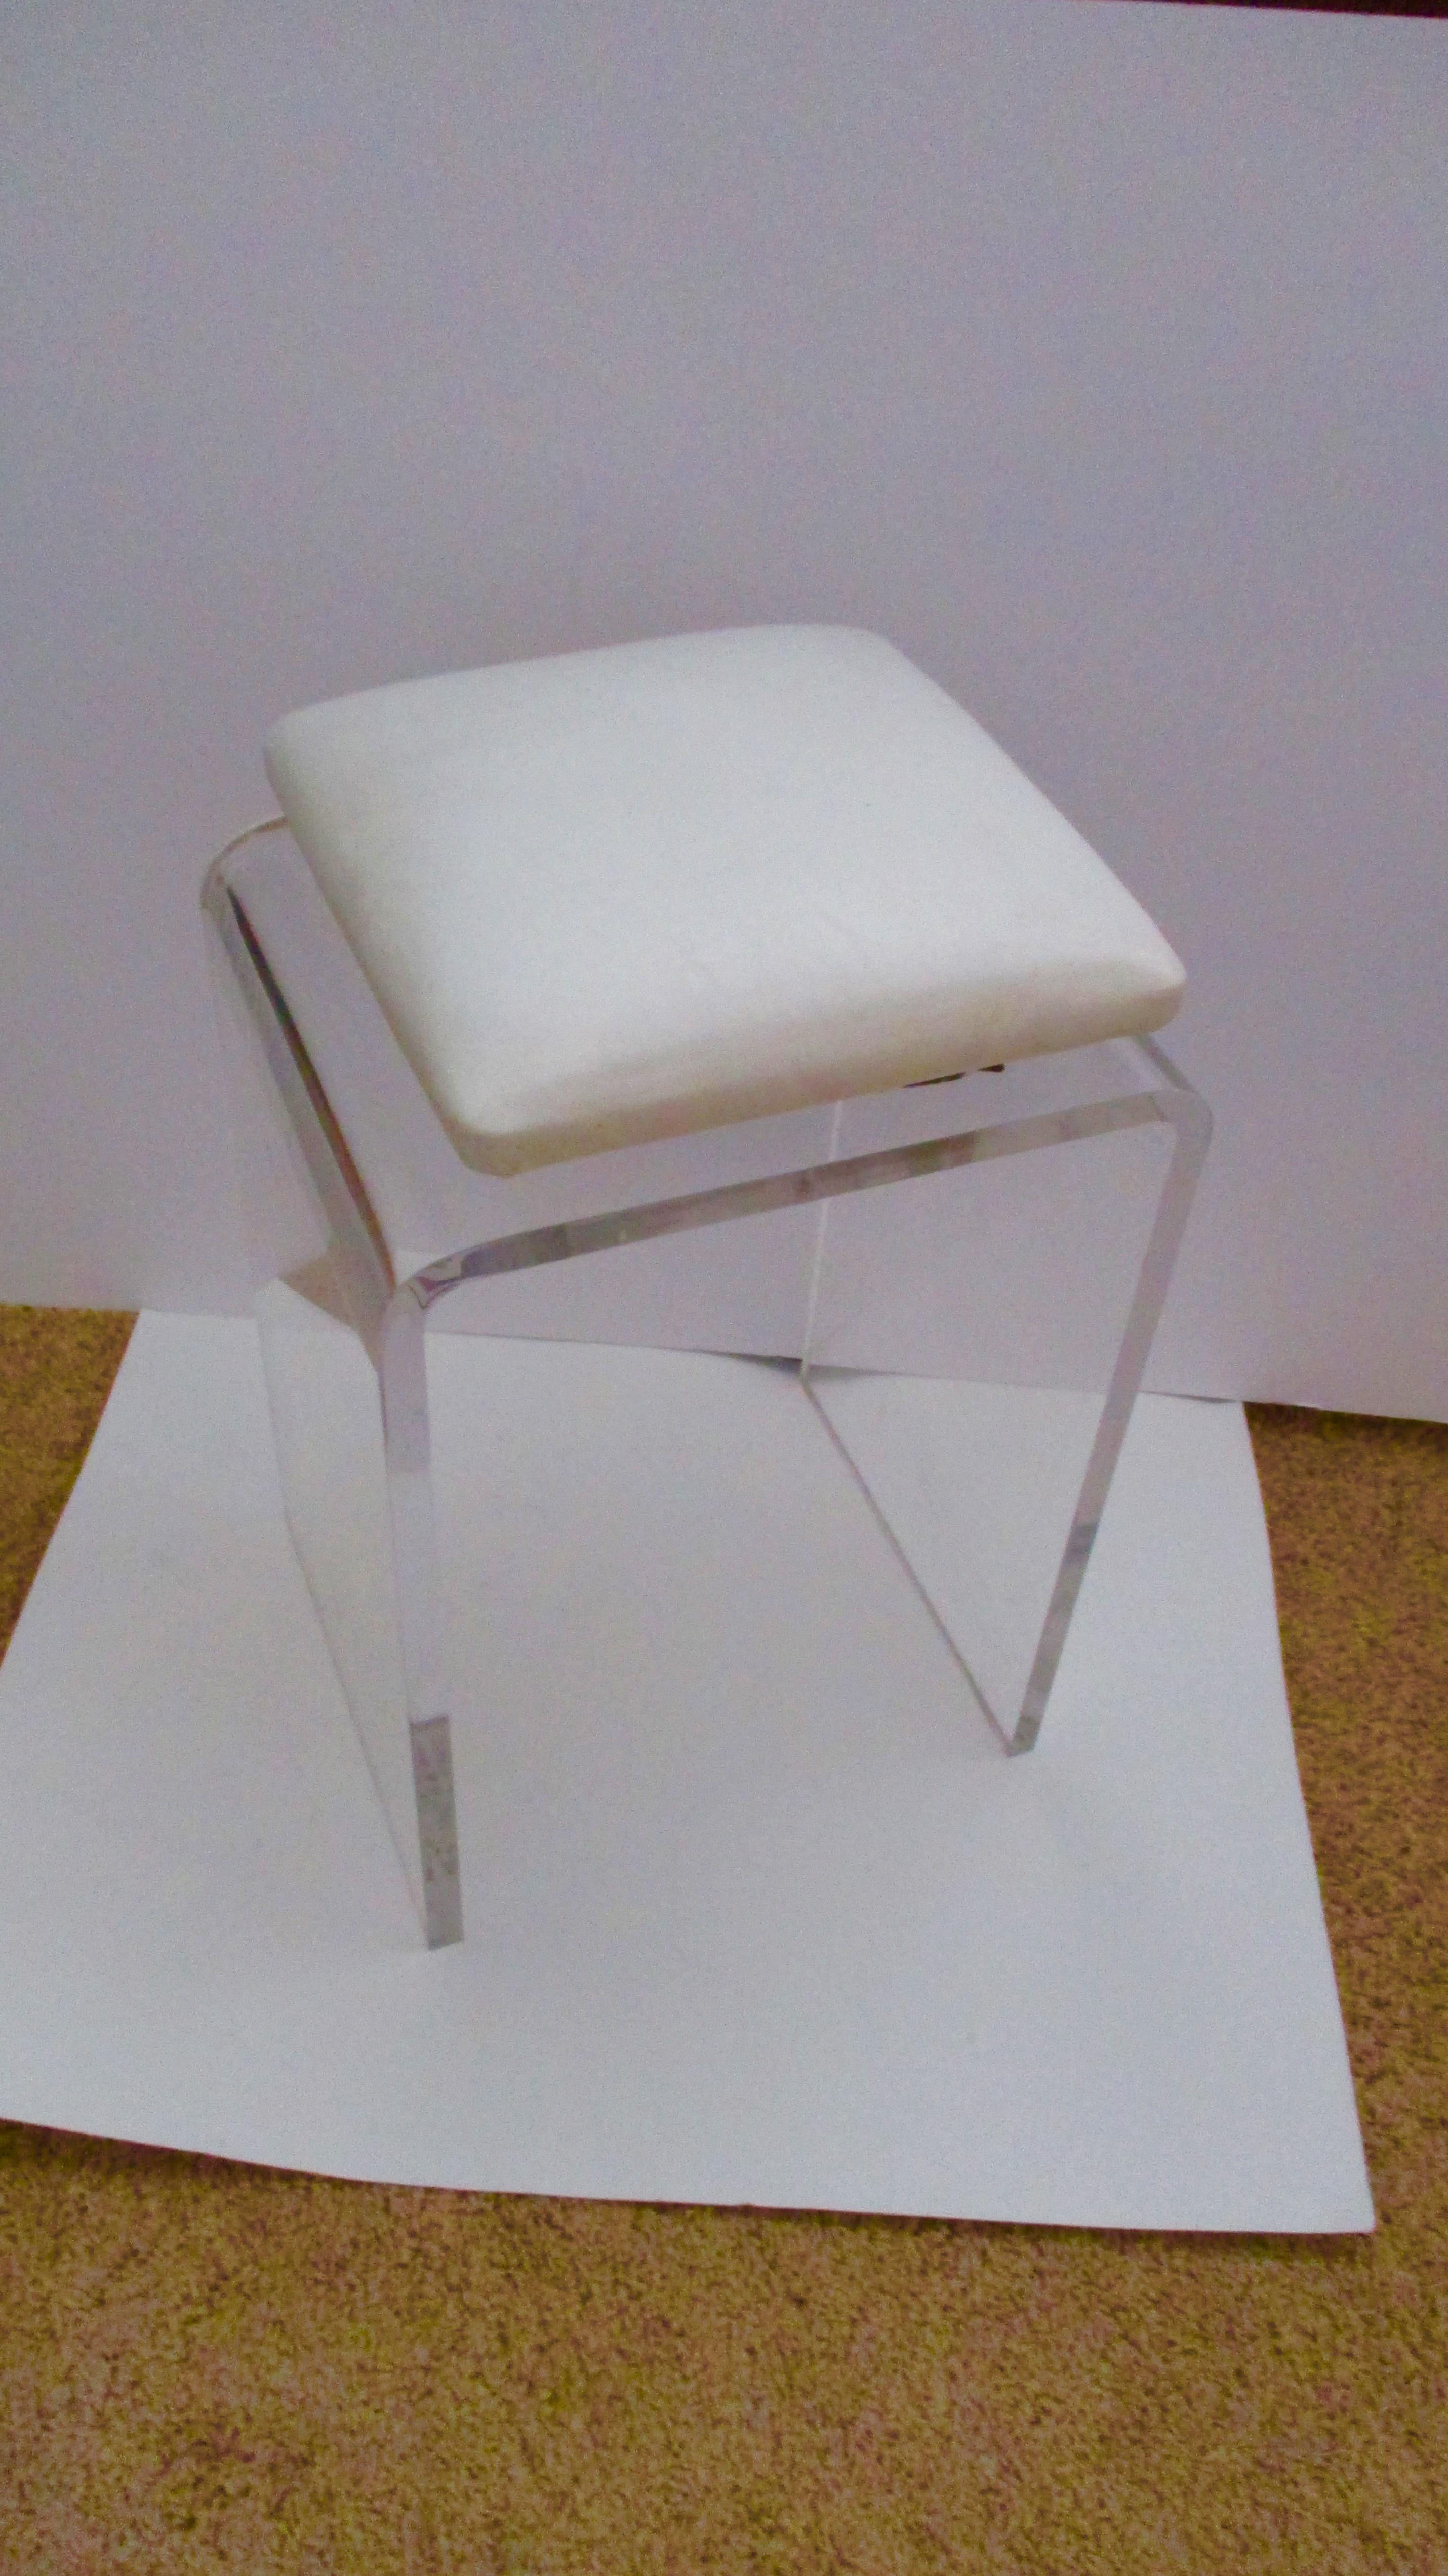 The Perfect Sized Stool To Pull Up To A Vanity Or Dressing Area Or In Your